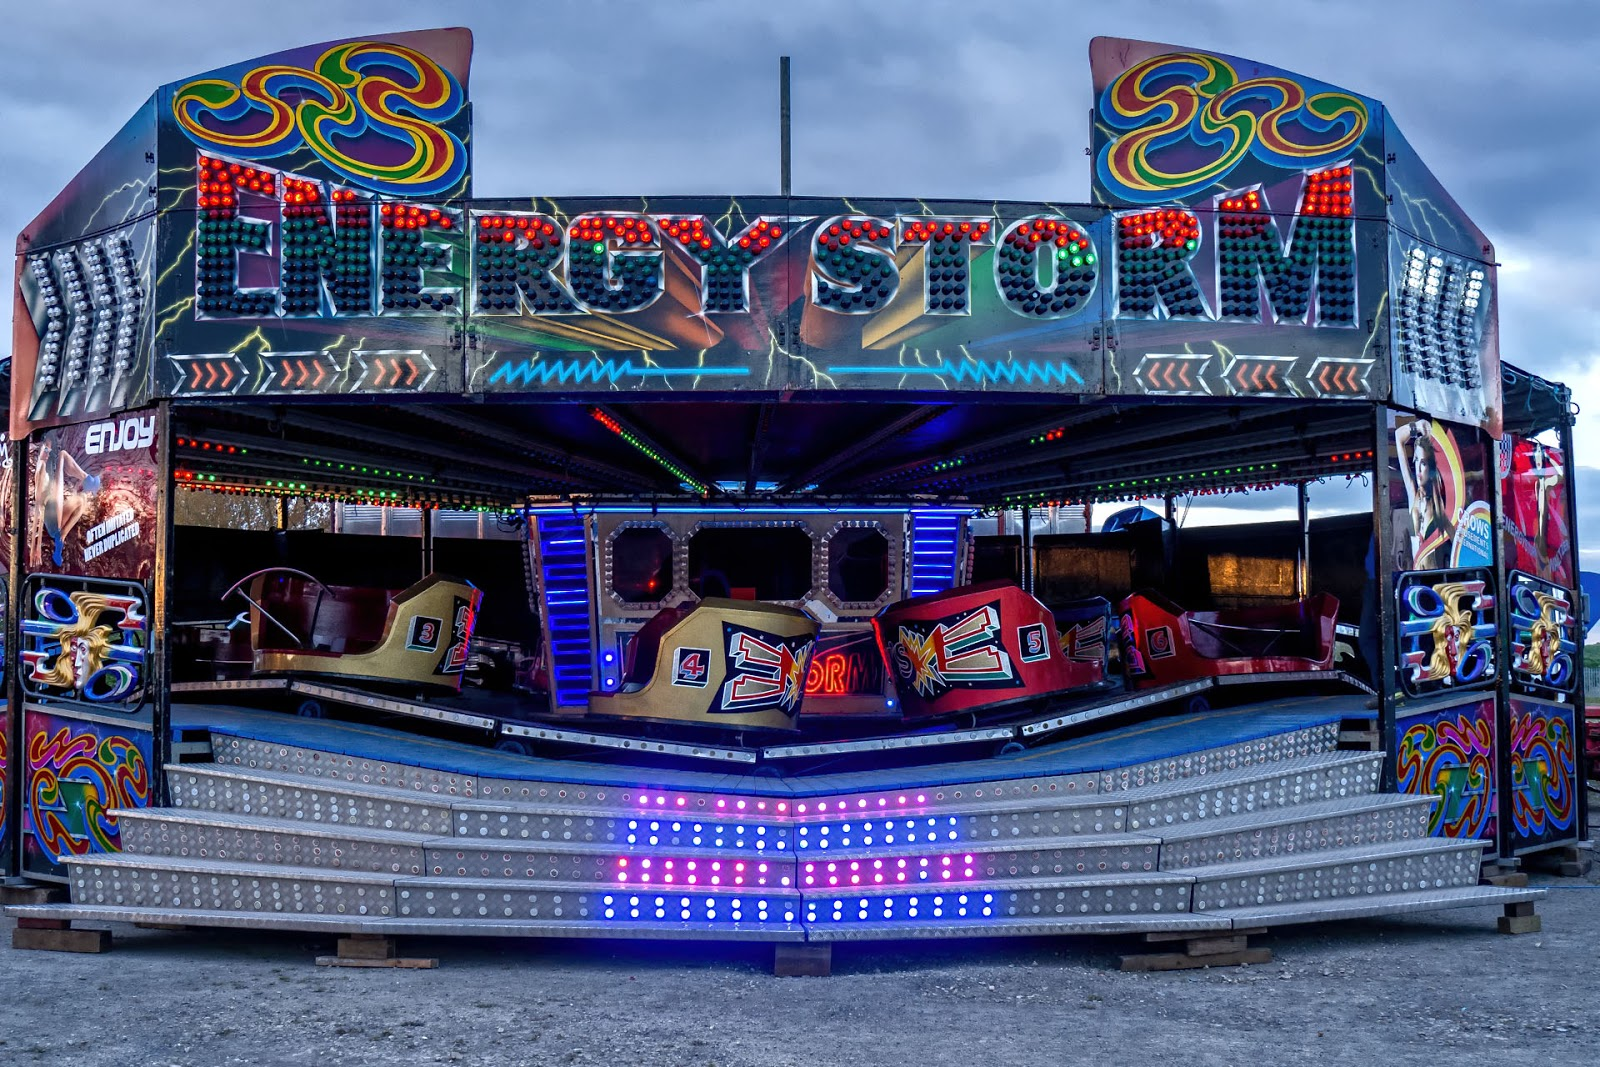 Essay for Students on My Visit to A Fun Fair Exhibition (530 Words)